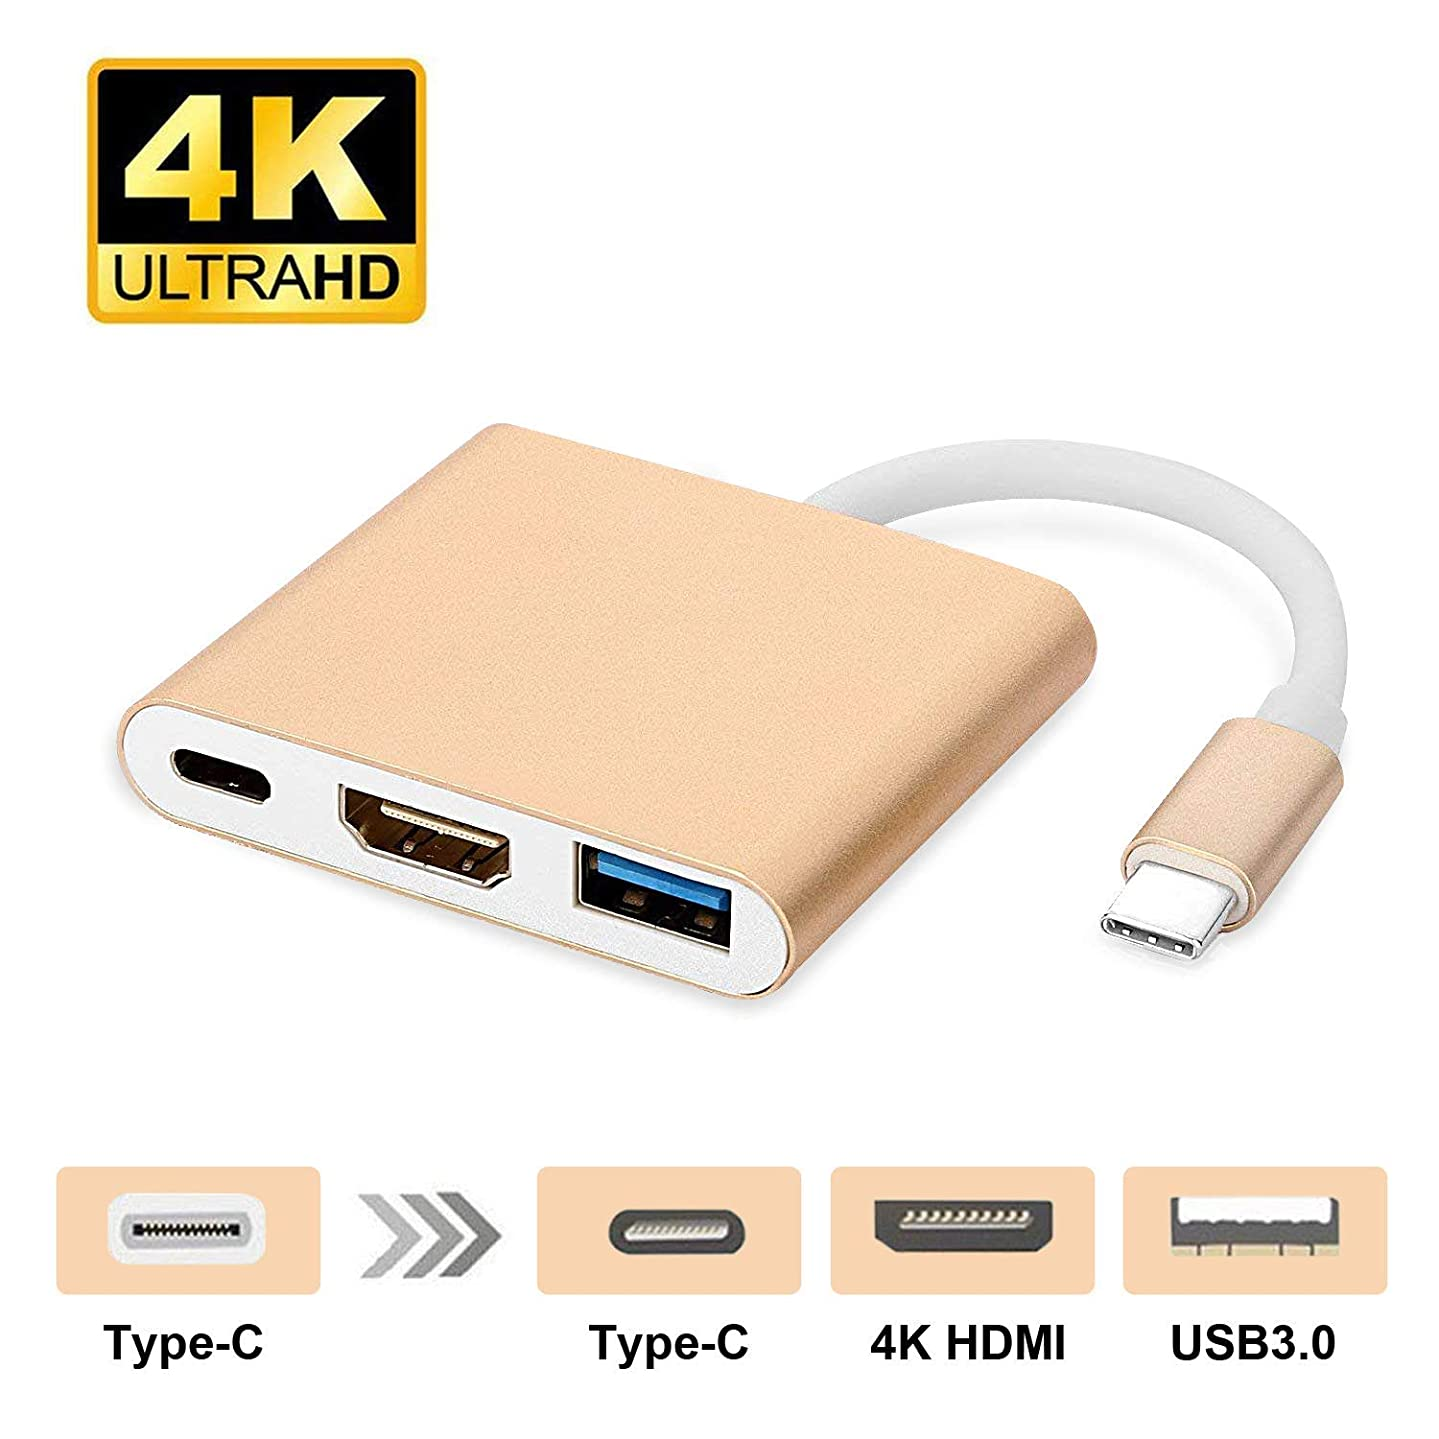 Sudroid USB Type C to HDMI Adapter 4K - USB 3.0 Type C Multiport AV Adapter Converter for MacBook, Chromebook Pixel Devices and More USB C Devices to HDTV/Projector (Gold)